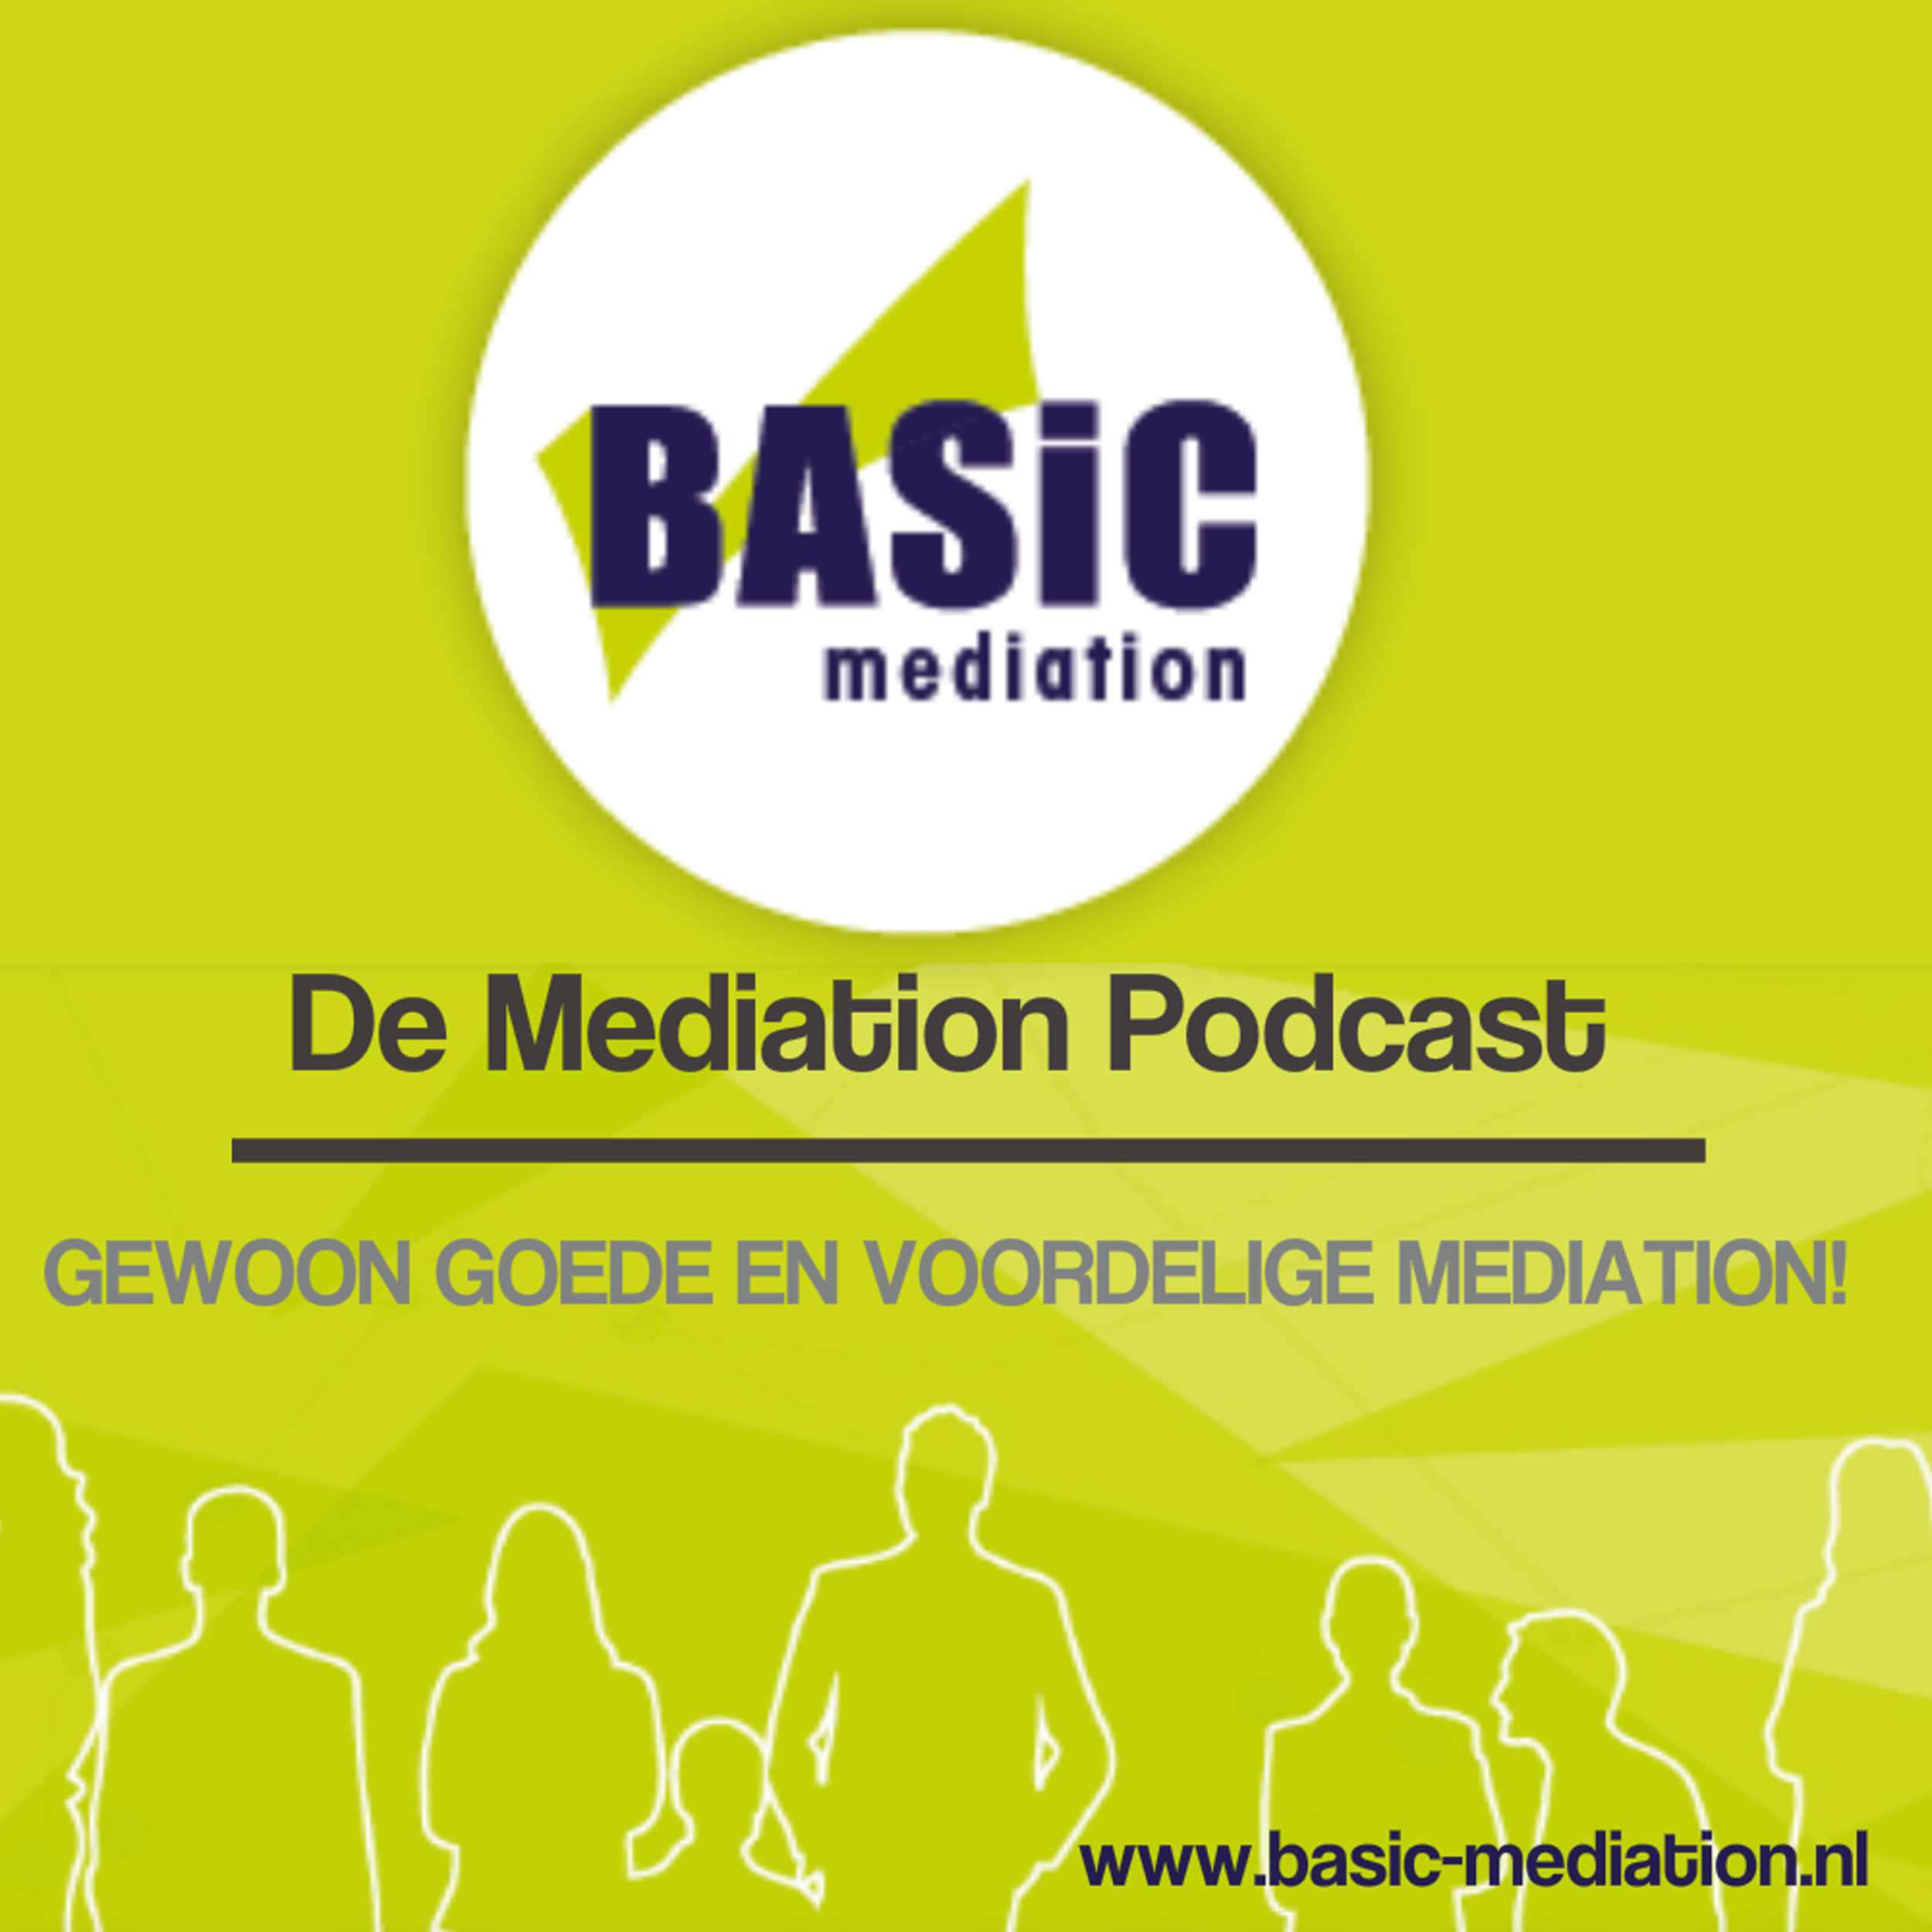 De Mediation Podcast